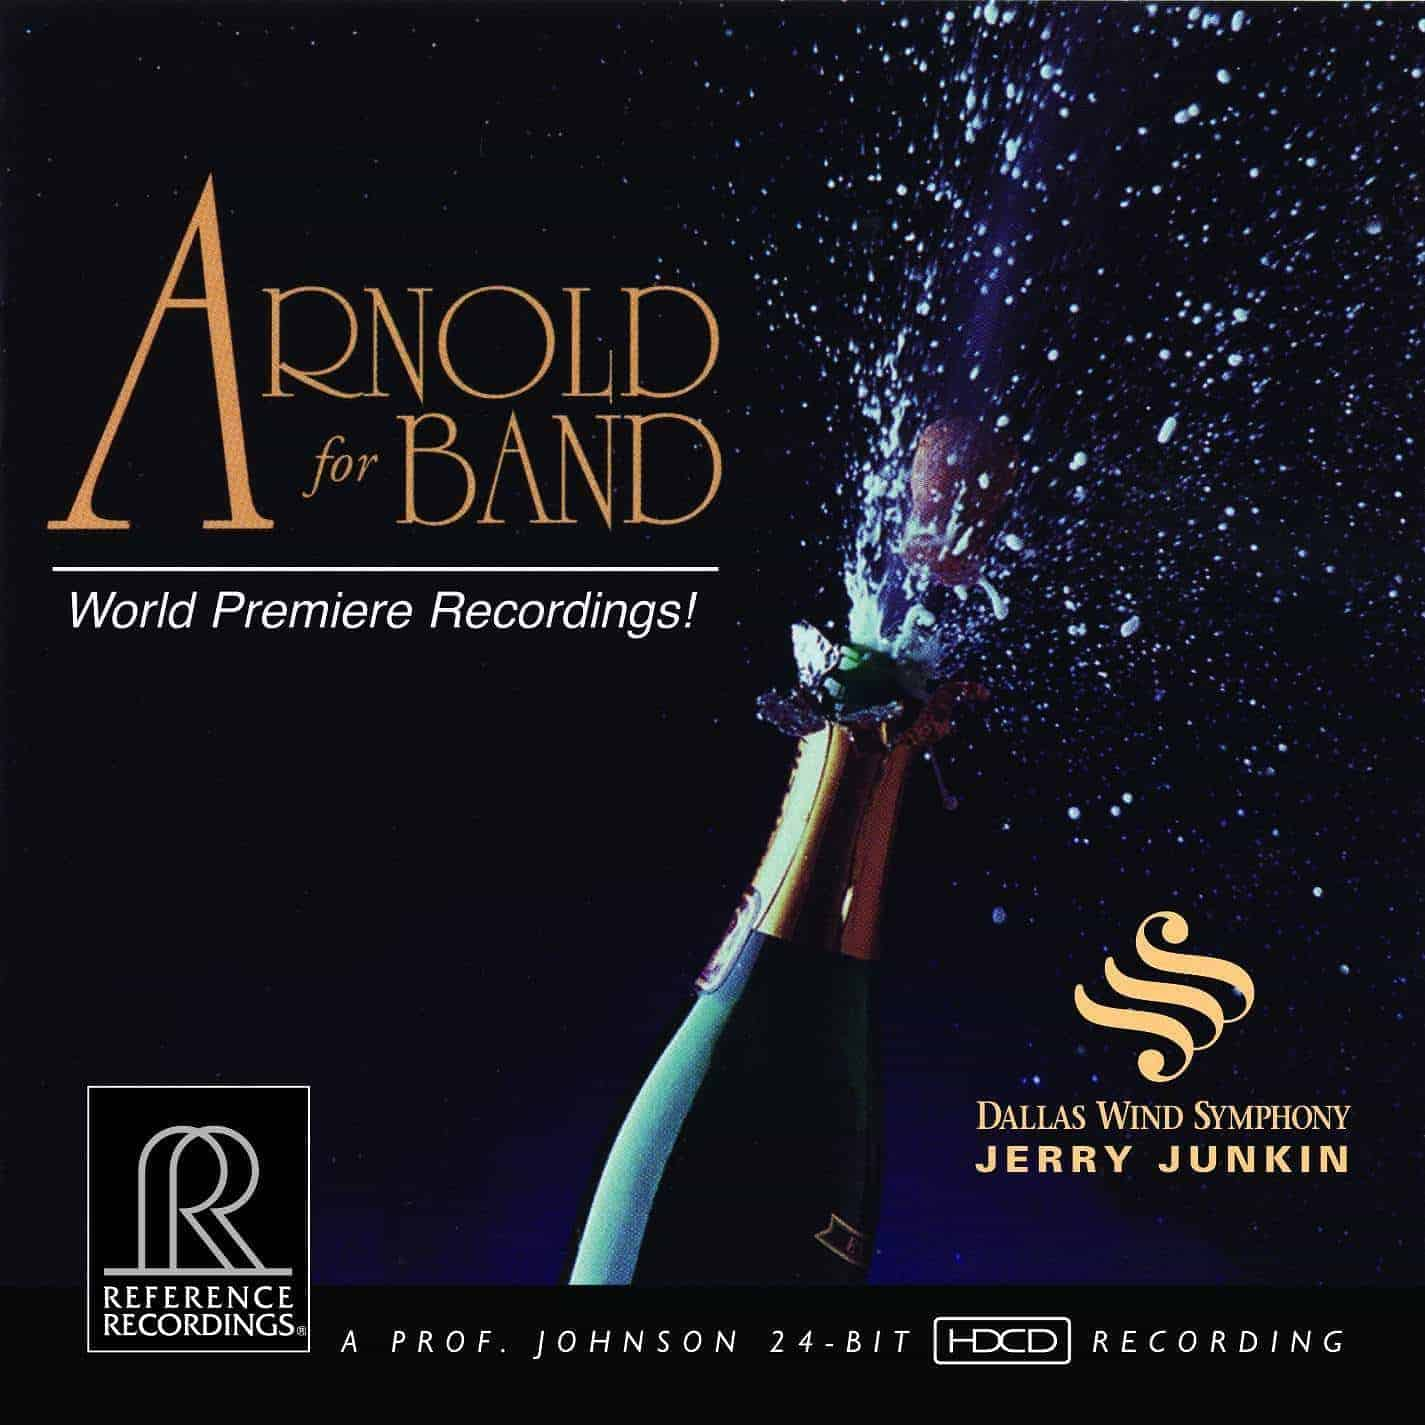 Arnold for Band | Dallas Wind Symphony